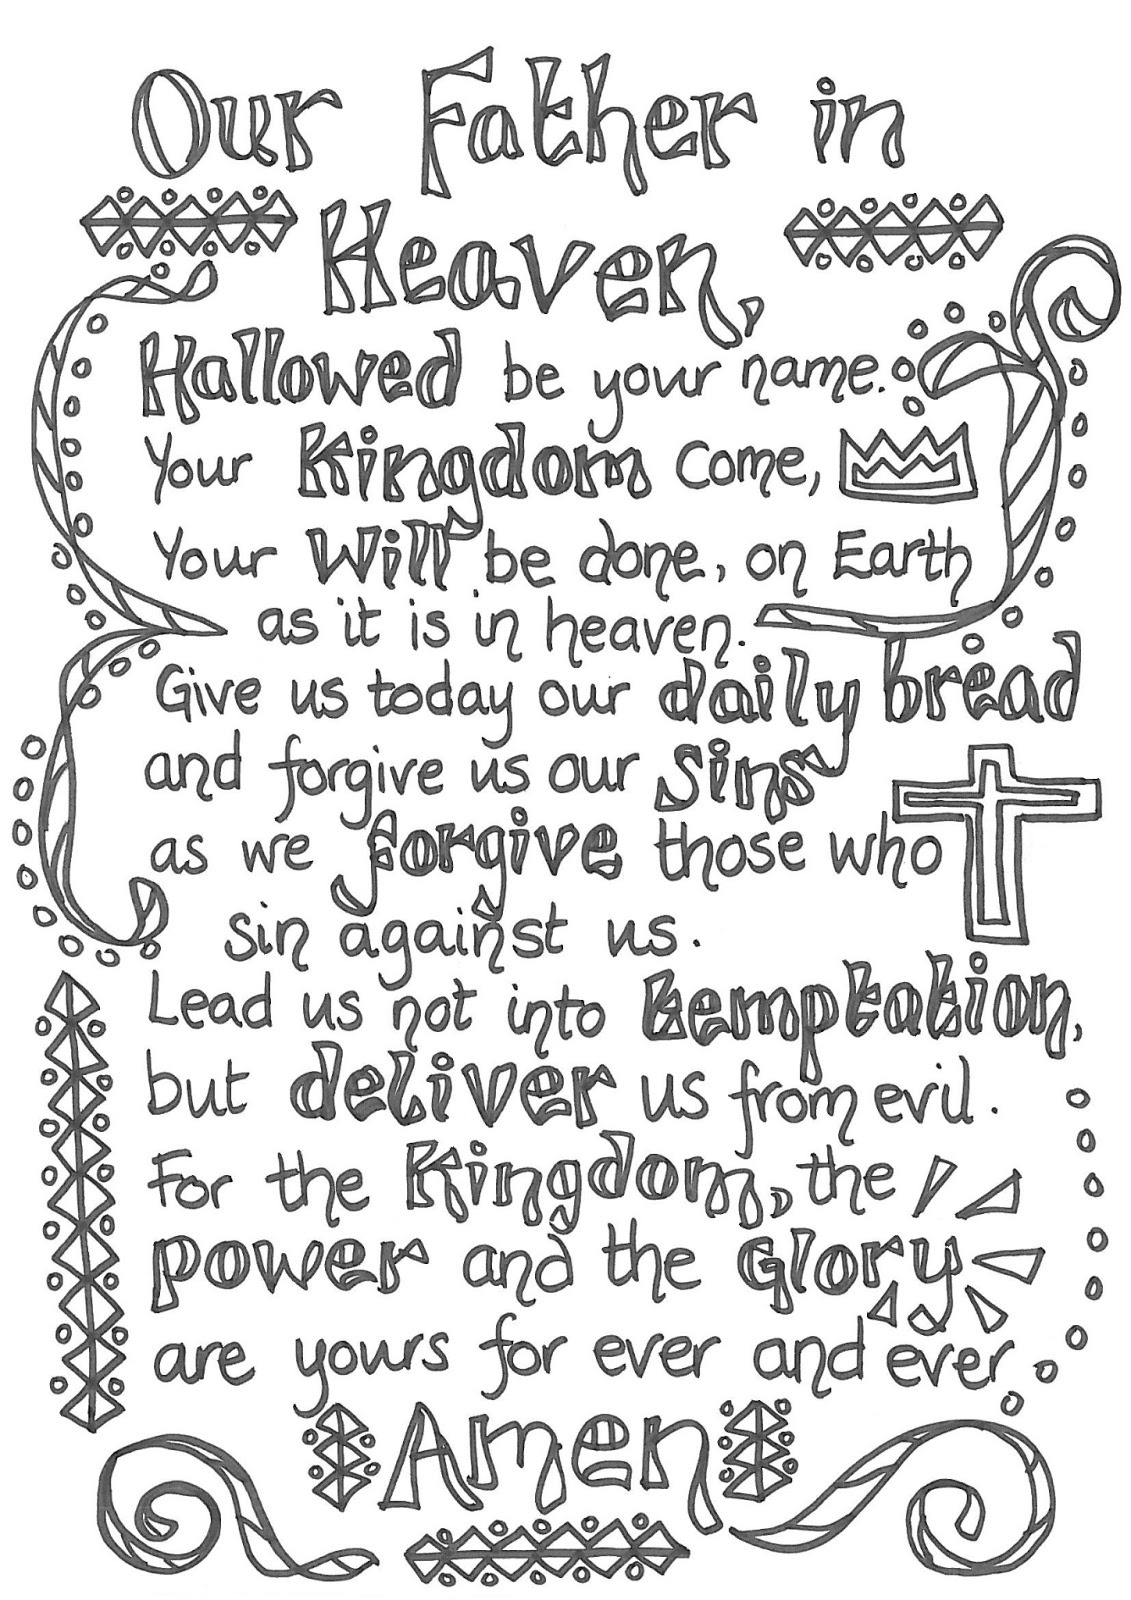 Flame: Creative Children's Ministry: Prayers To Colour In! - Free Printable Lord's Prayer Coloring Pages